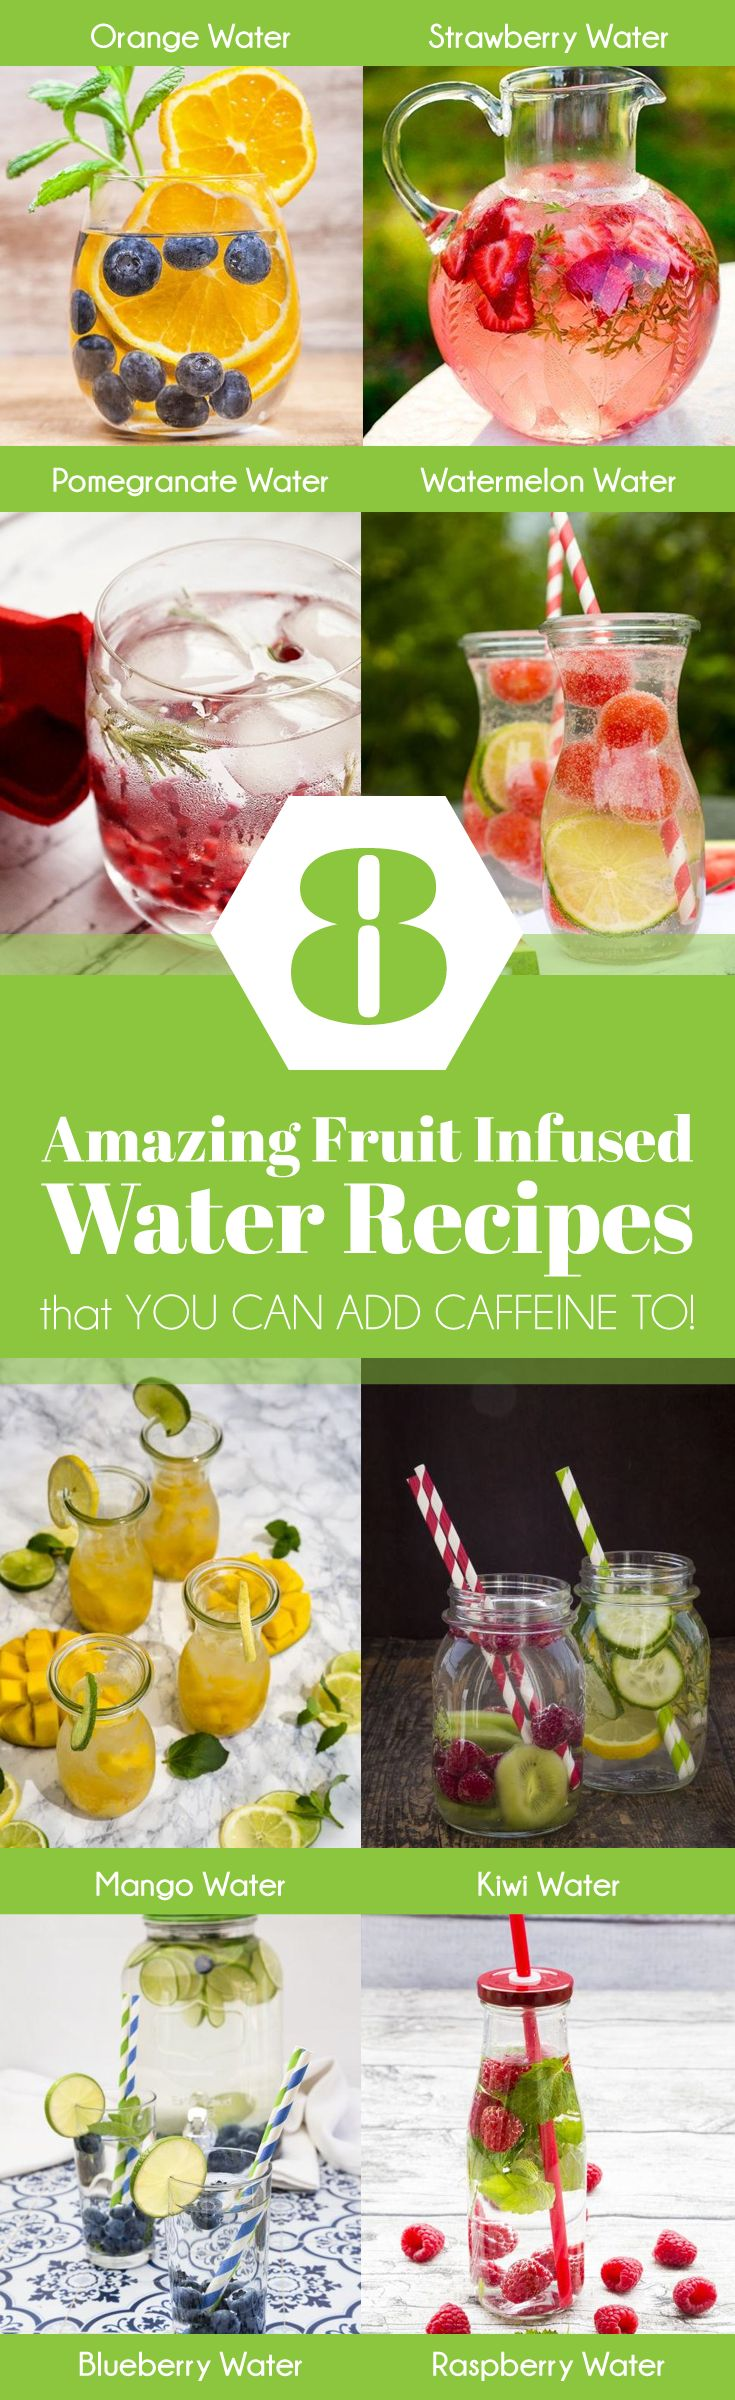 Learn what fruit water recipes will give you energy and keep you healthy!   https://purelyft.com/8-amazing-fruit-infused-water-recipes-that-you-can-add-caffeine-to/